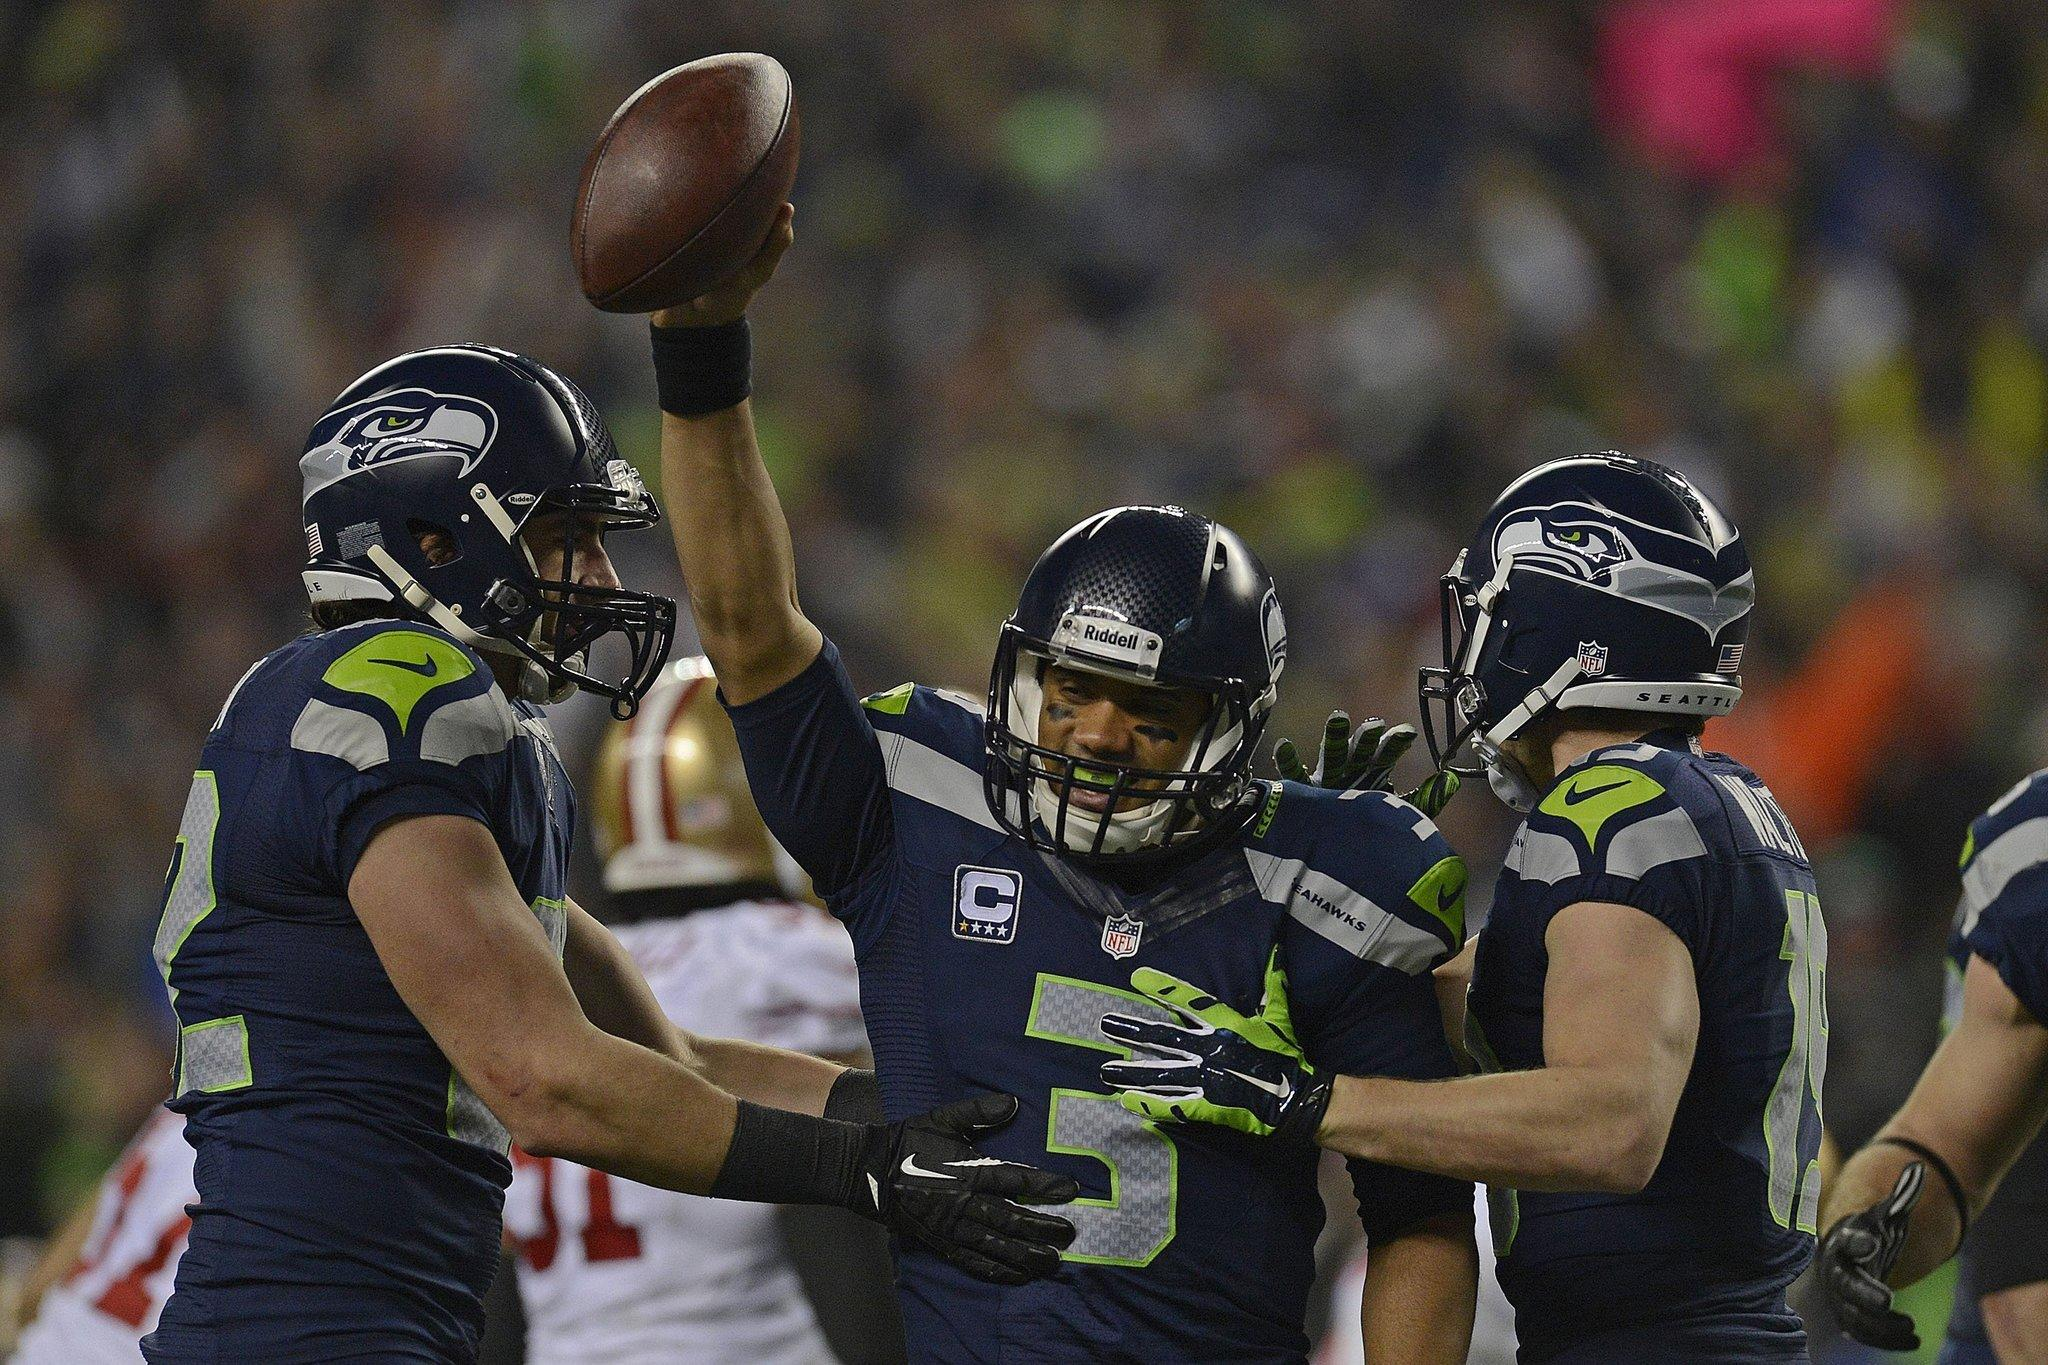 Seattle quarterback Russell Wilson raises his arm in celebration after the Seahawks defeated the San Francisco 49ers in the NFC championship game Jan. 19.